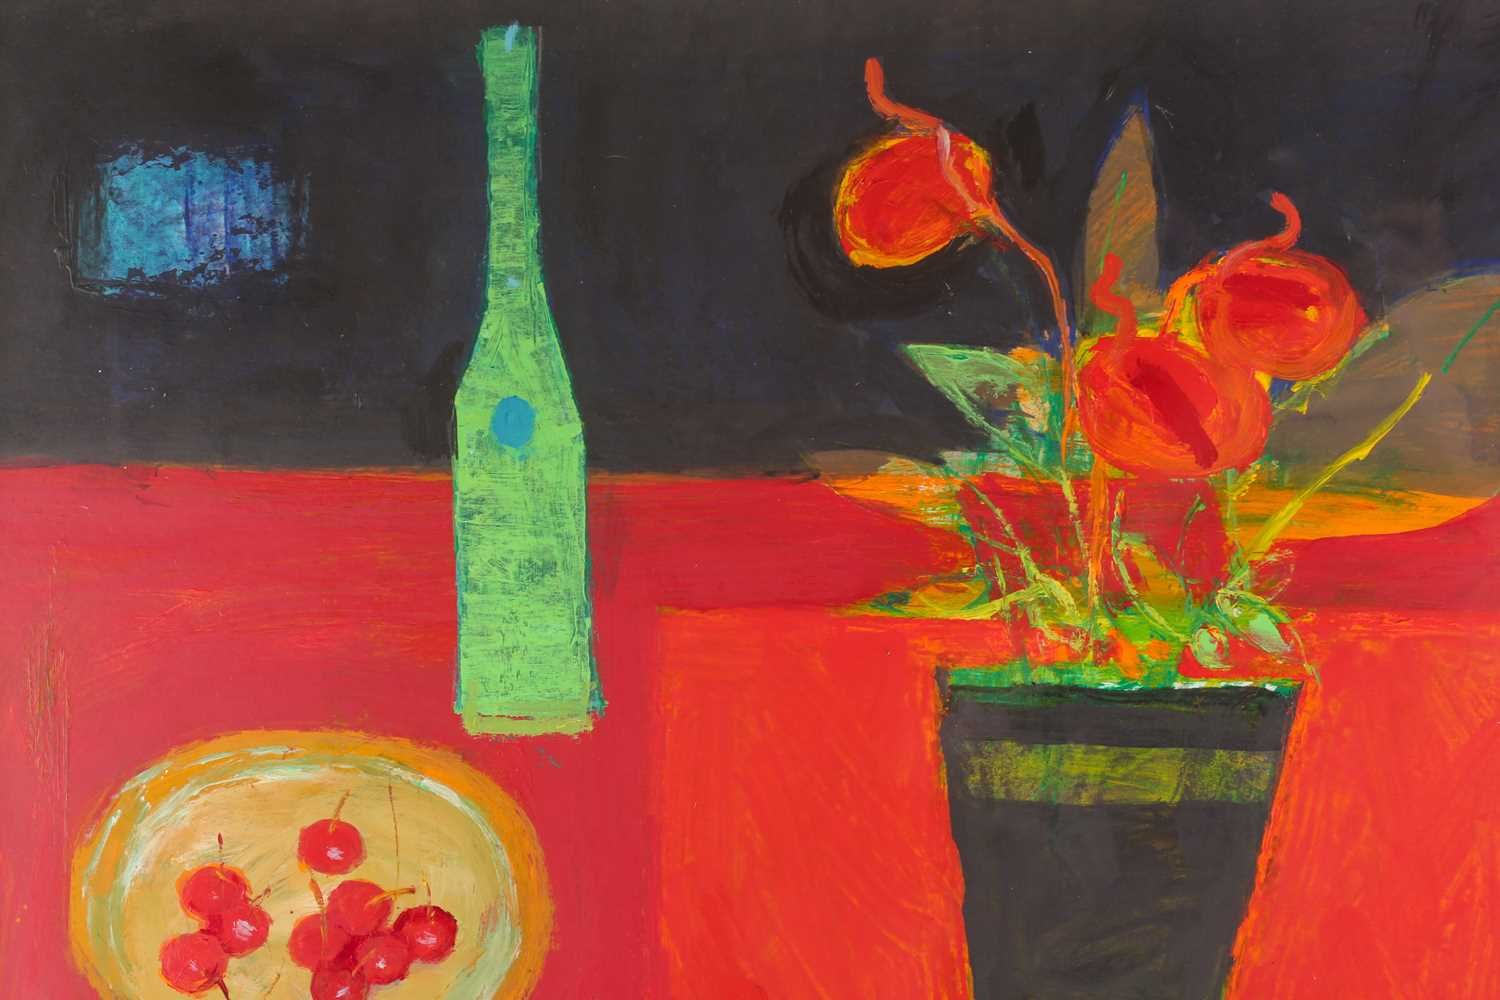 William Selby, (B. 1933), Green Bottle, acrylic on board, signed lower right, 64 cm x 74 cm. Ex - Image 2 of 4